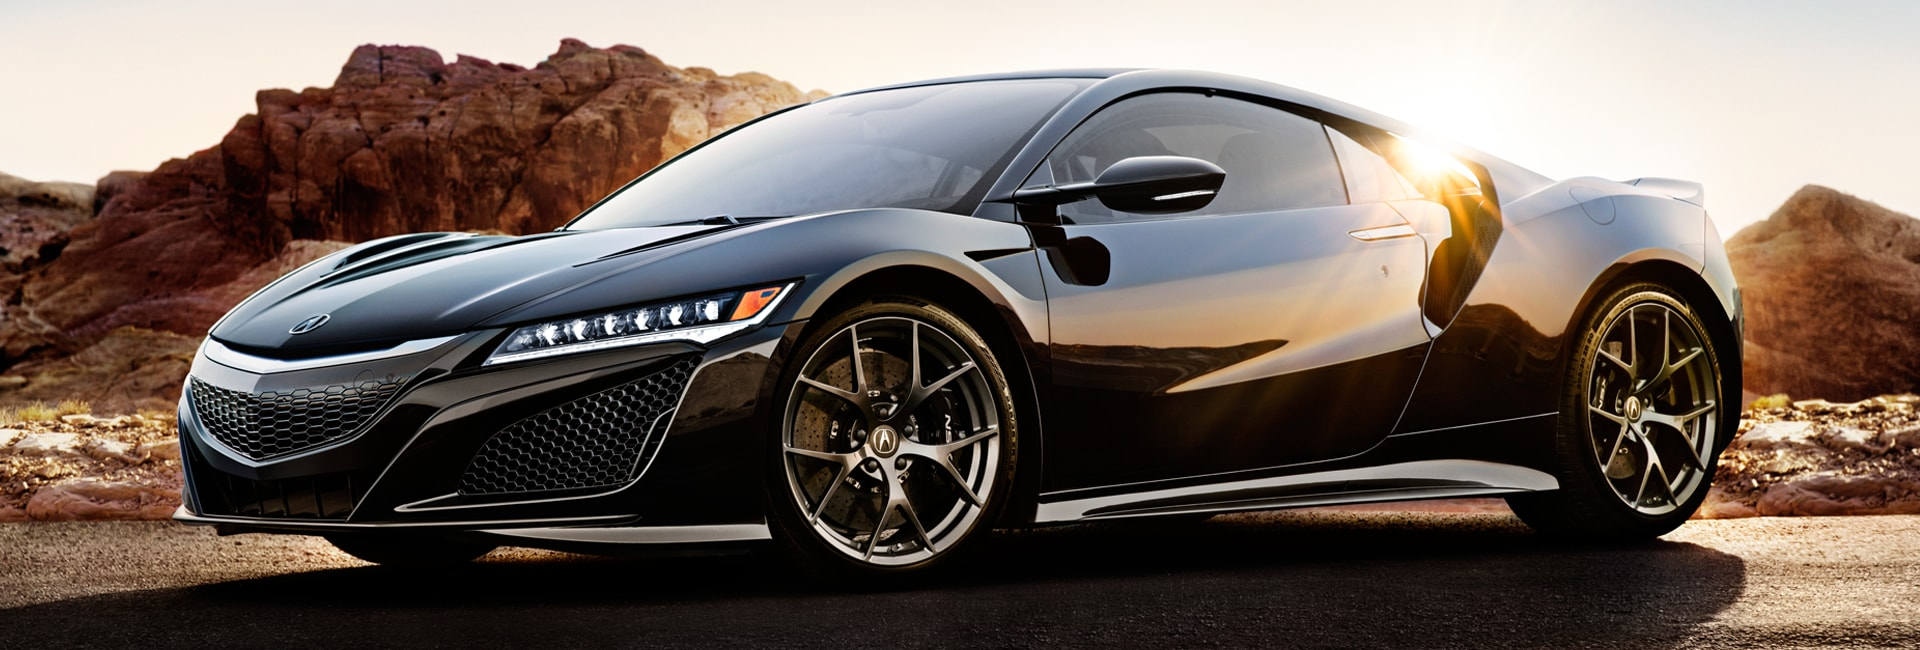 2017 Acura NSX Exterior Features